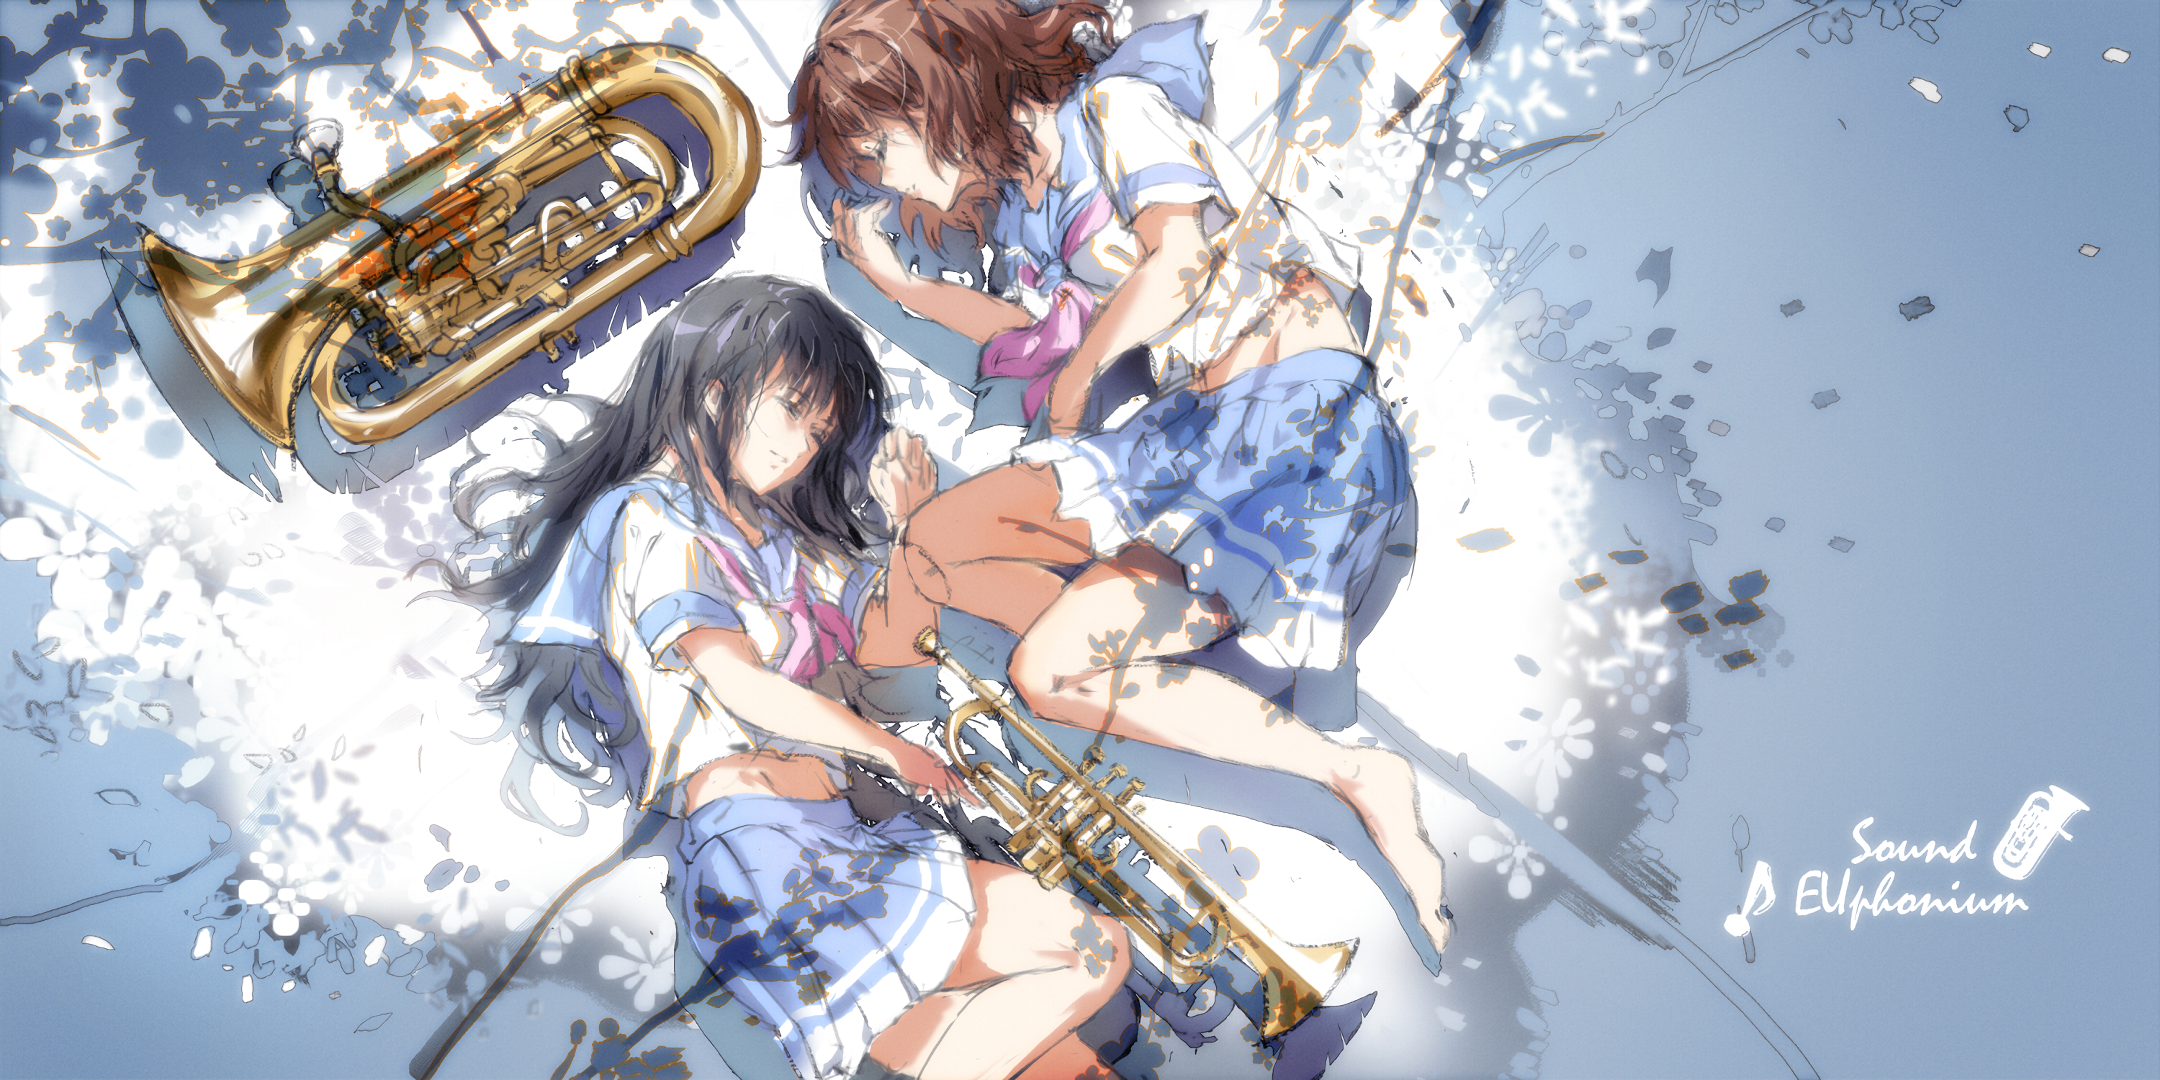 338 Sound Euphonium HD Wallpapers Background Images   Wallpaper 2160x1080